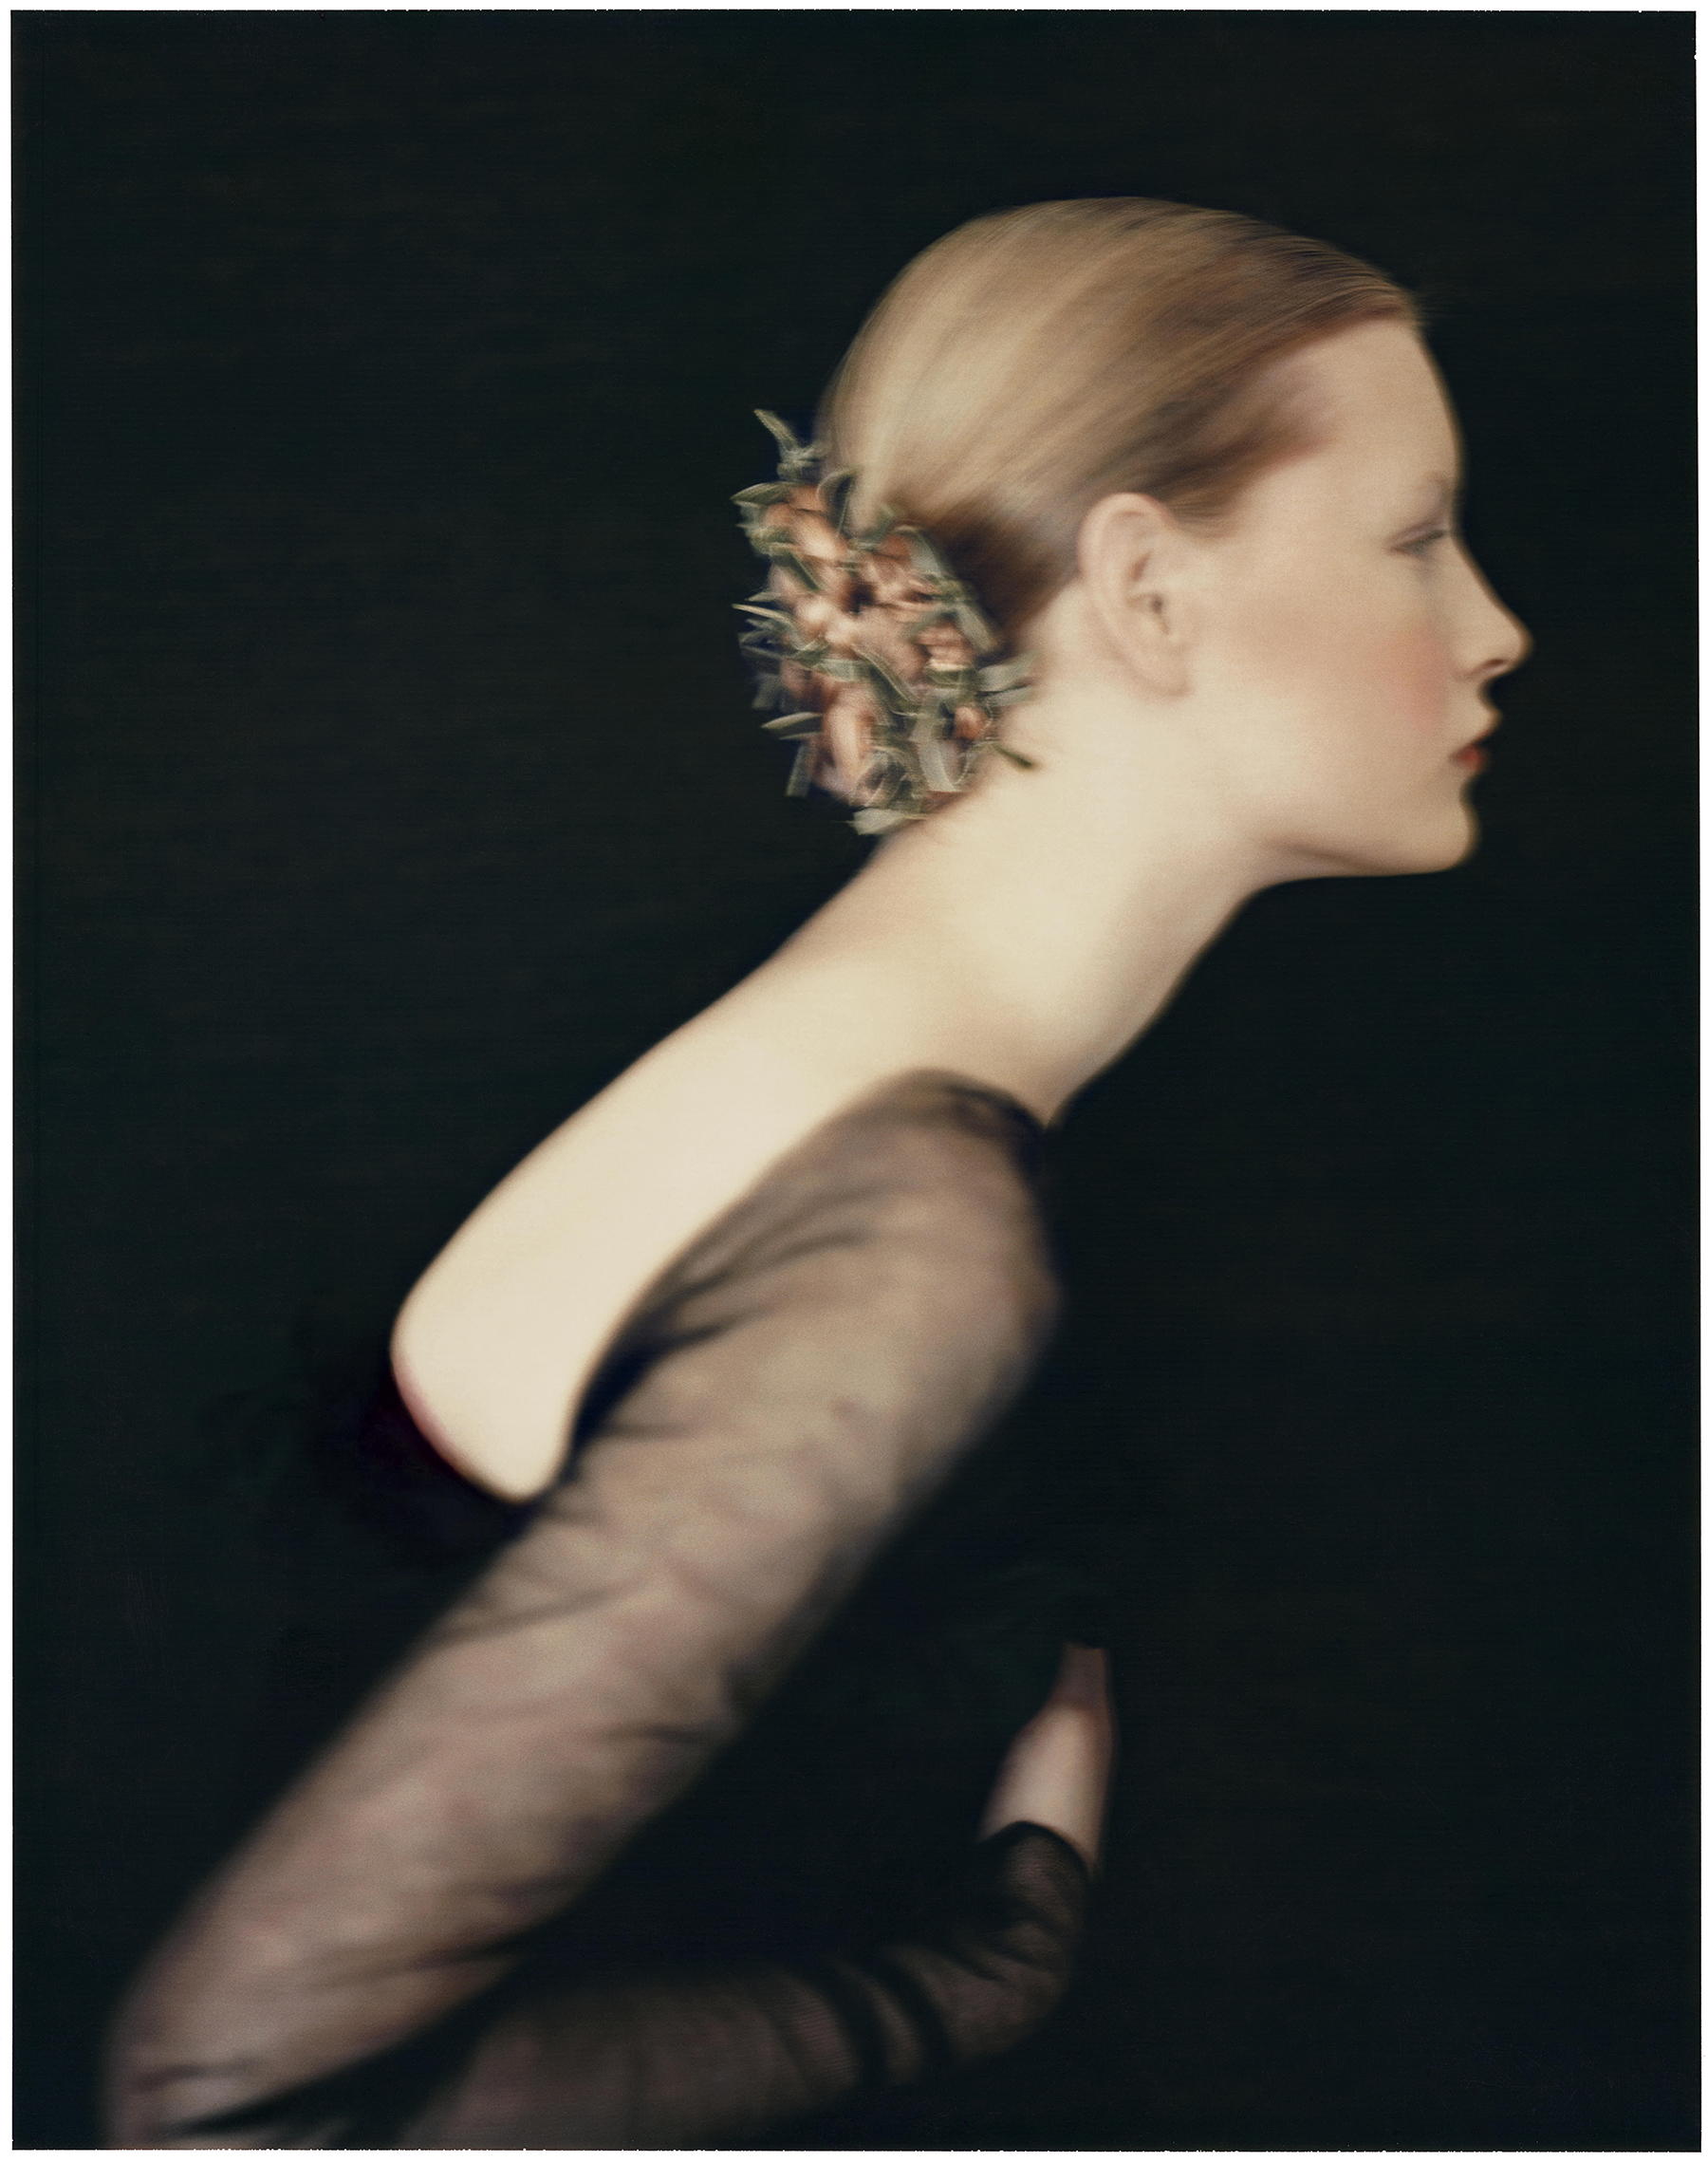 Paolo Roversi Photographer Interview